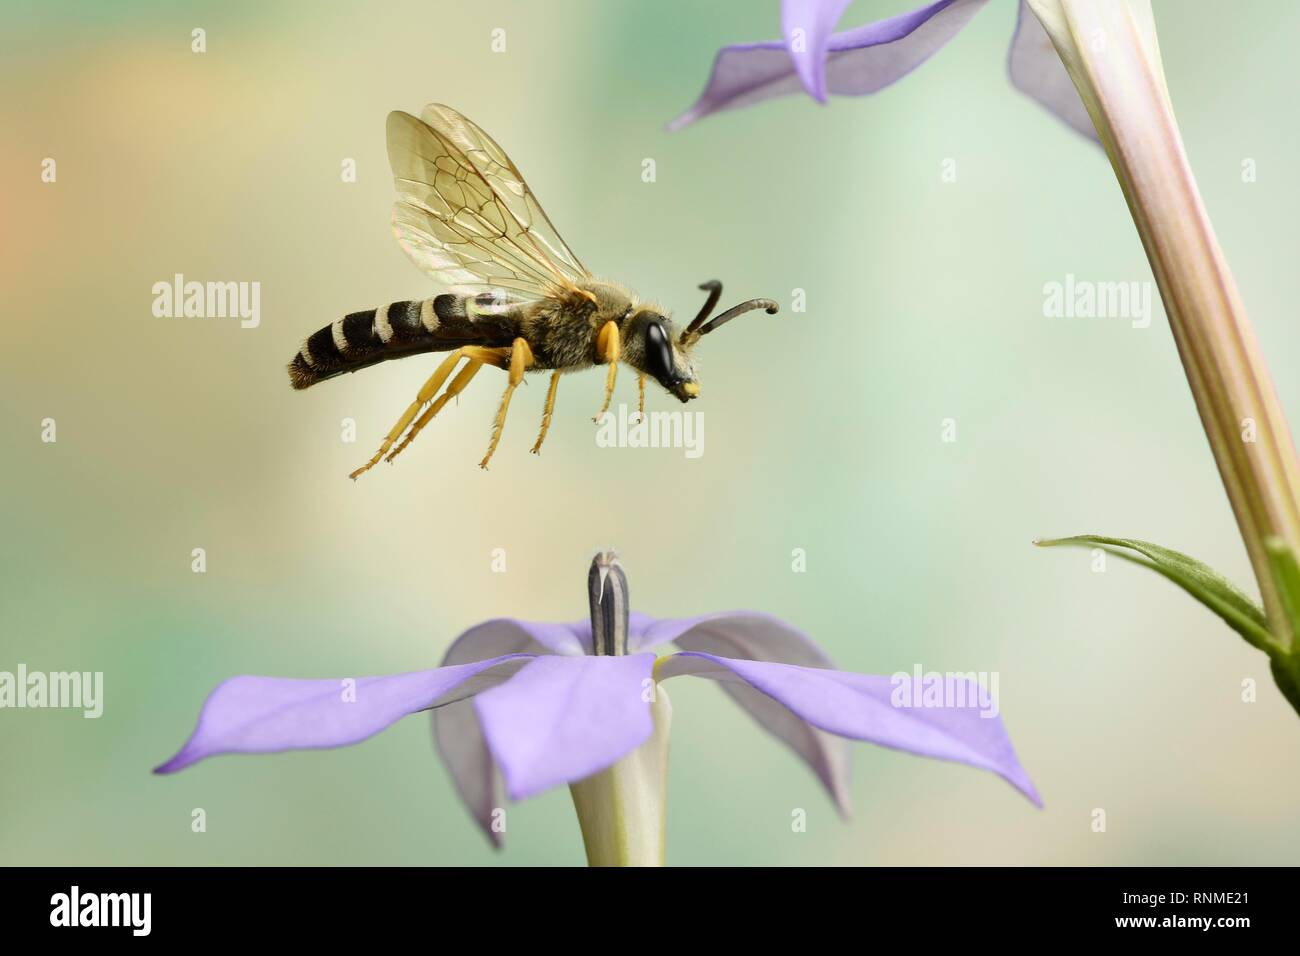 Sweat Bee (Halictus scabiosae) in flight at the flower of a Phlox (Phlox), Germany, Europe - Stock Image